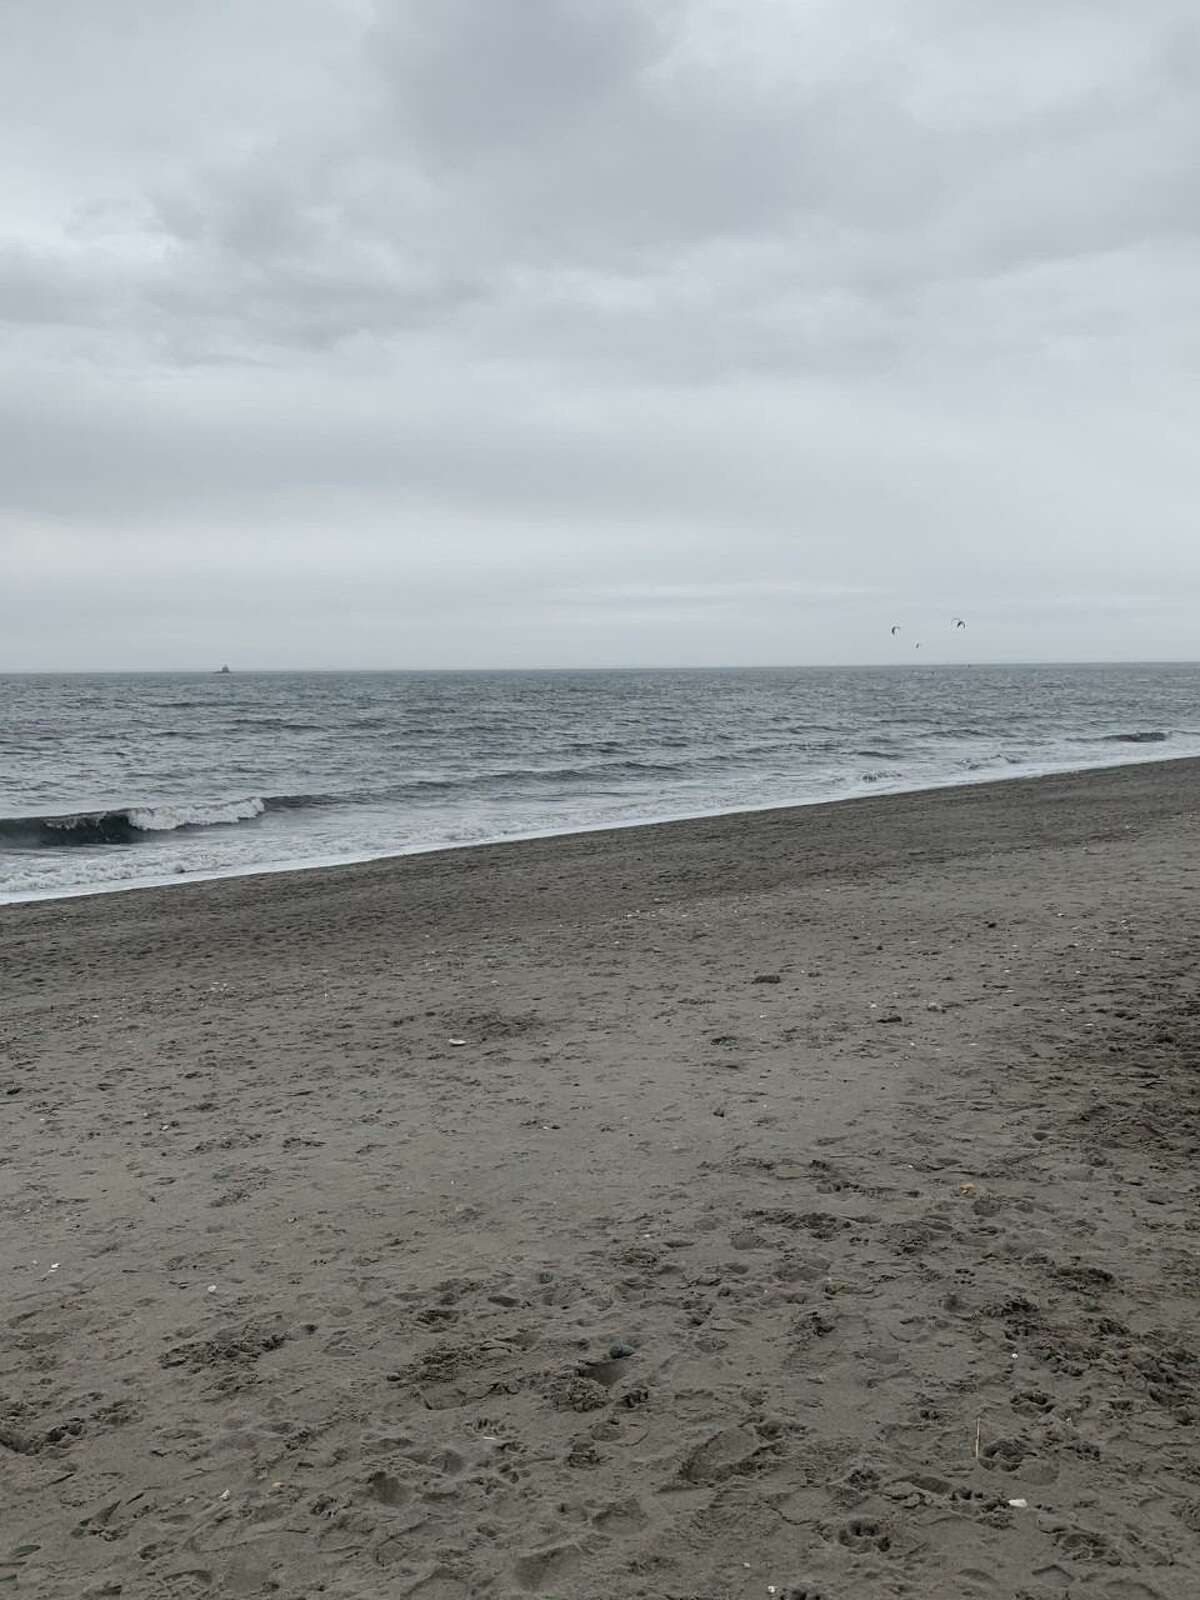 Fairfield resident Matt Podolsky sent photos in front of Long Island Sound at Jennings Beach by Fairfield Harbor before the Christmas Eve storm came Dec. 24 in 52 degree weather. Podolsky said it was